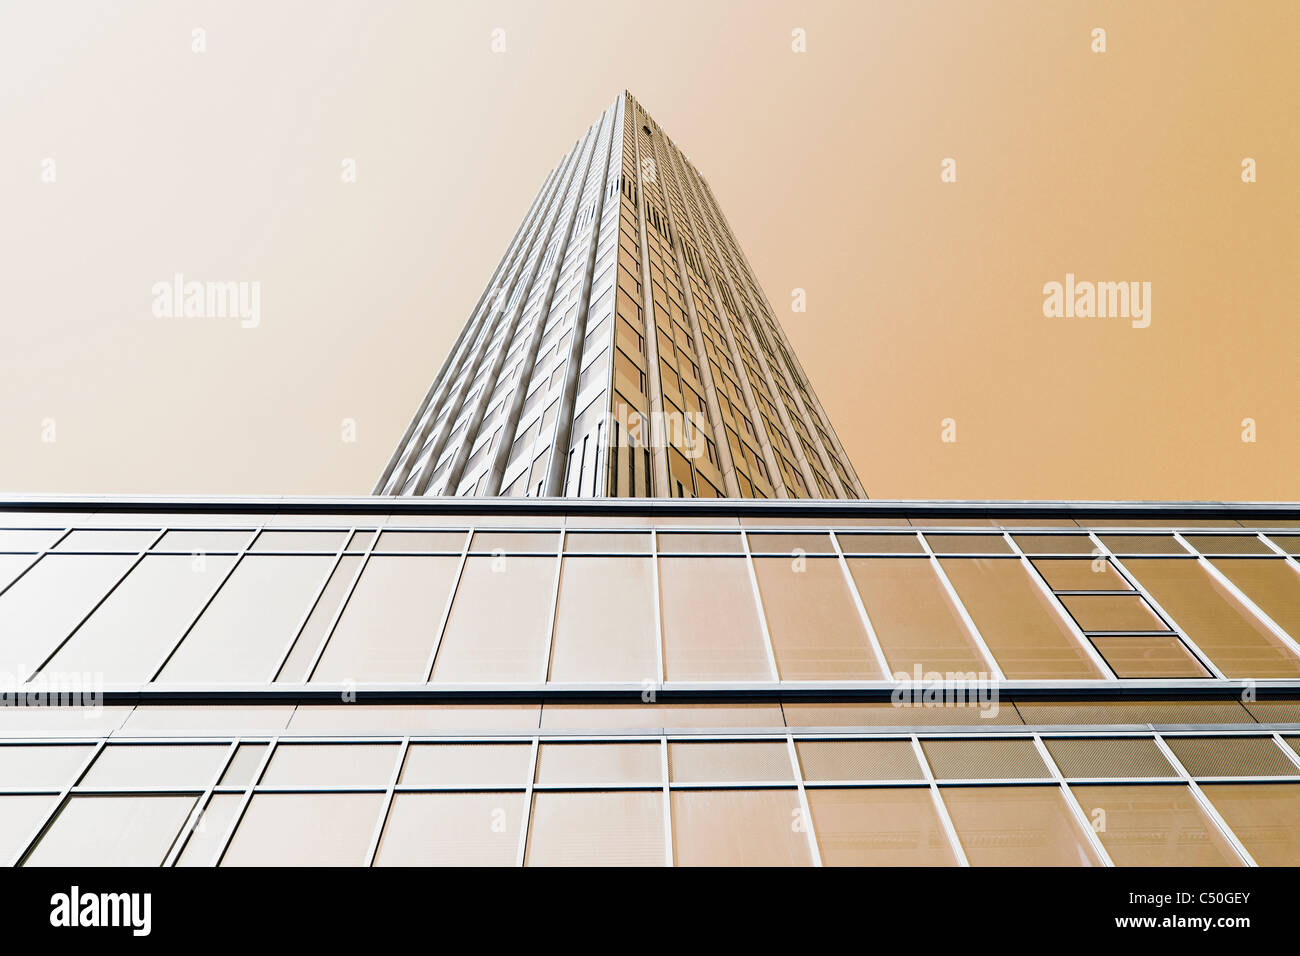 European Central Bank Tower, ECB tower, EZB Tower, facade, creative, urban, Frankfurt am Main, Hesse, Germany, Europe - Stock Image